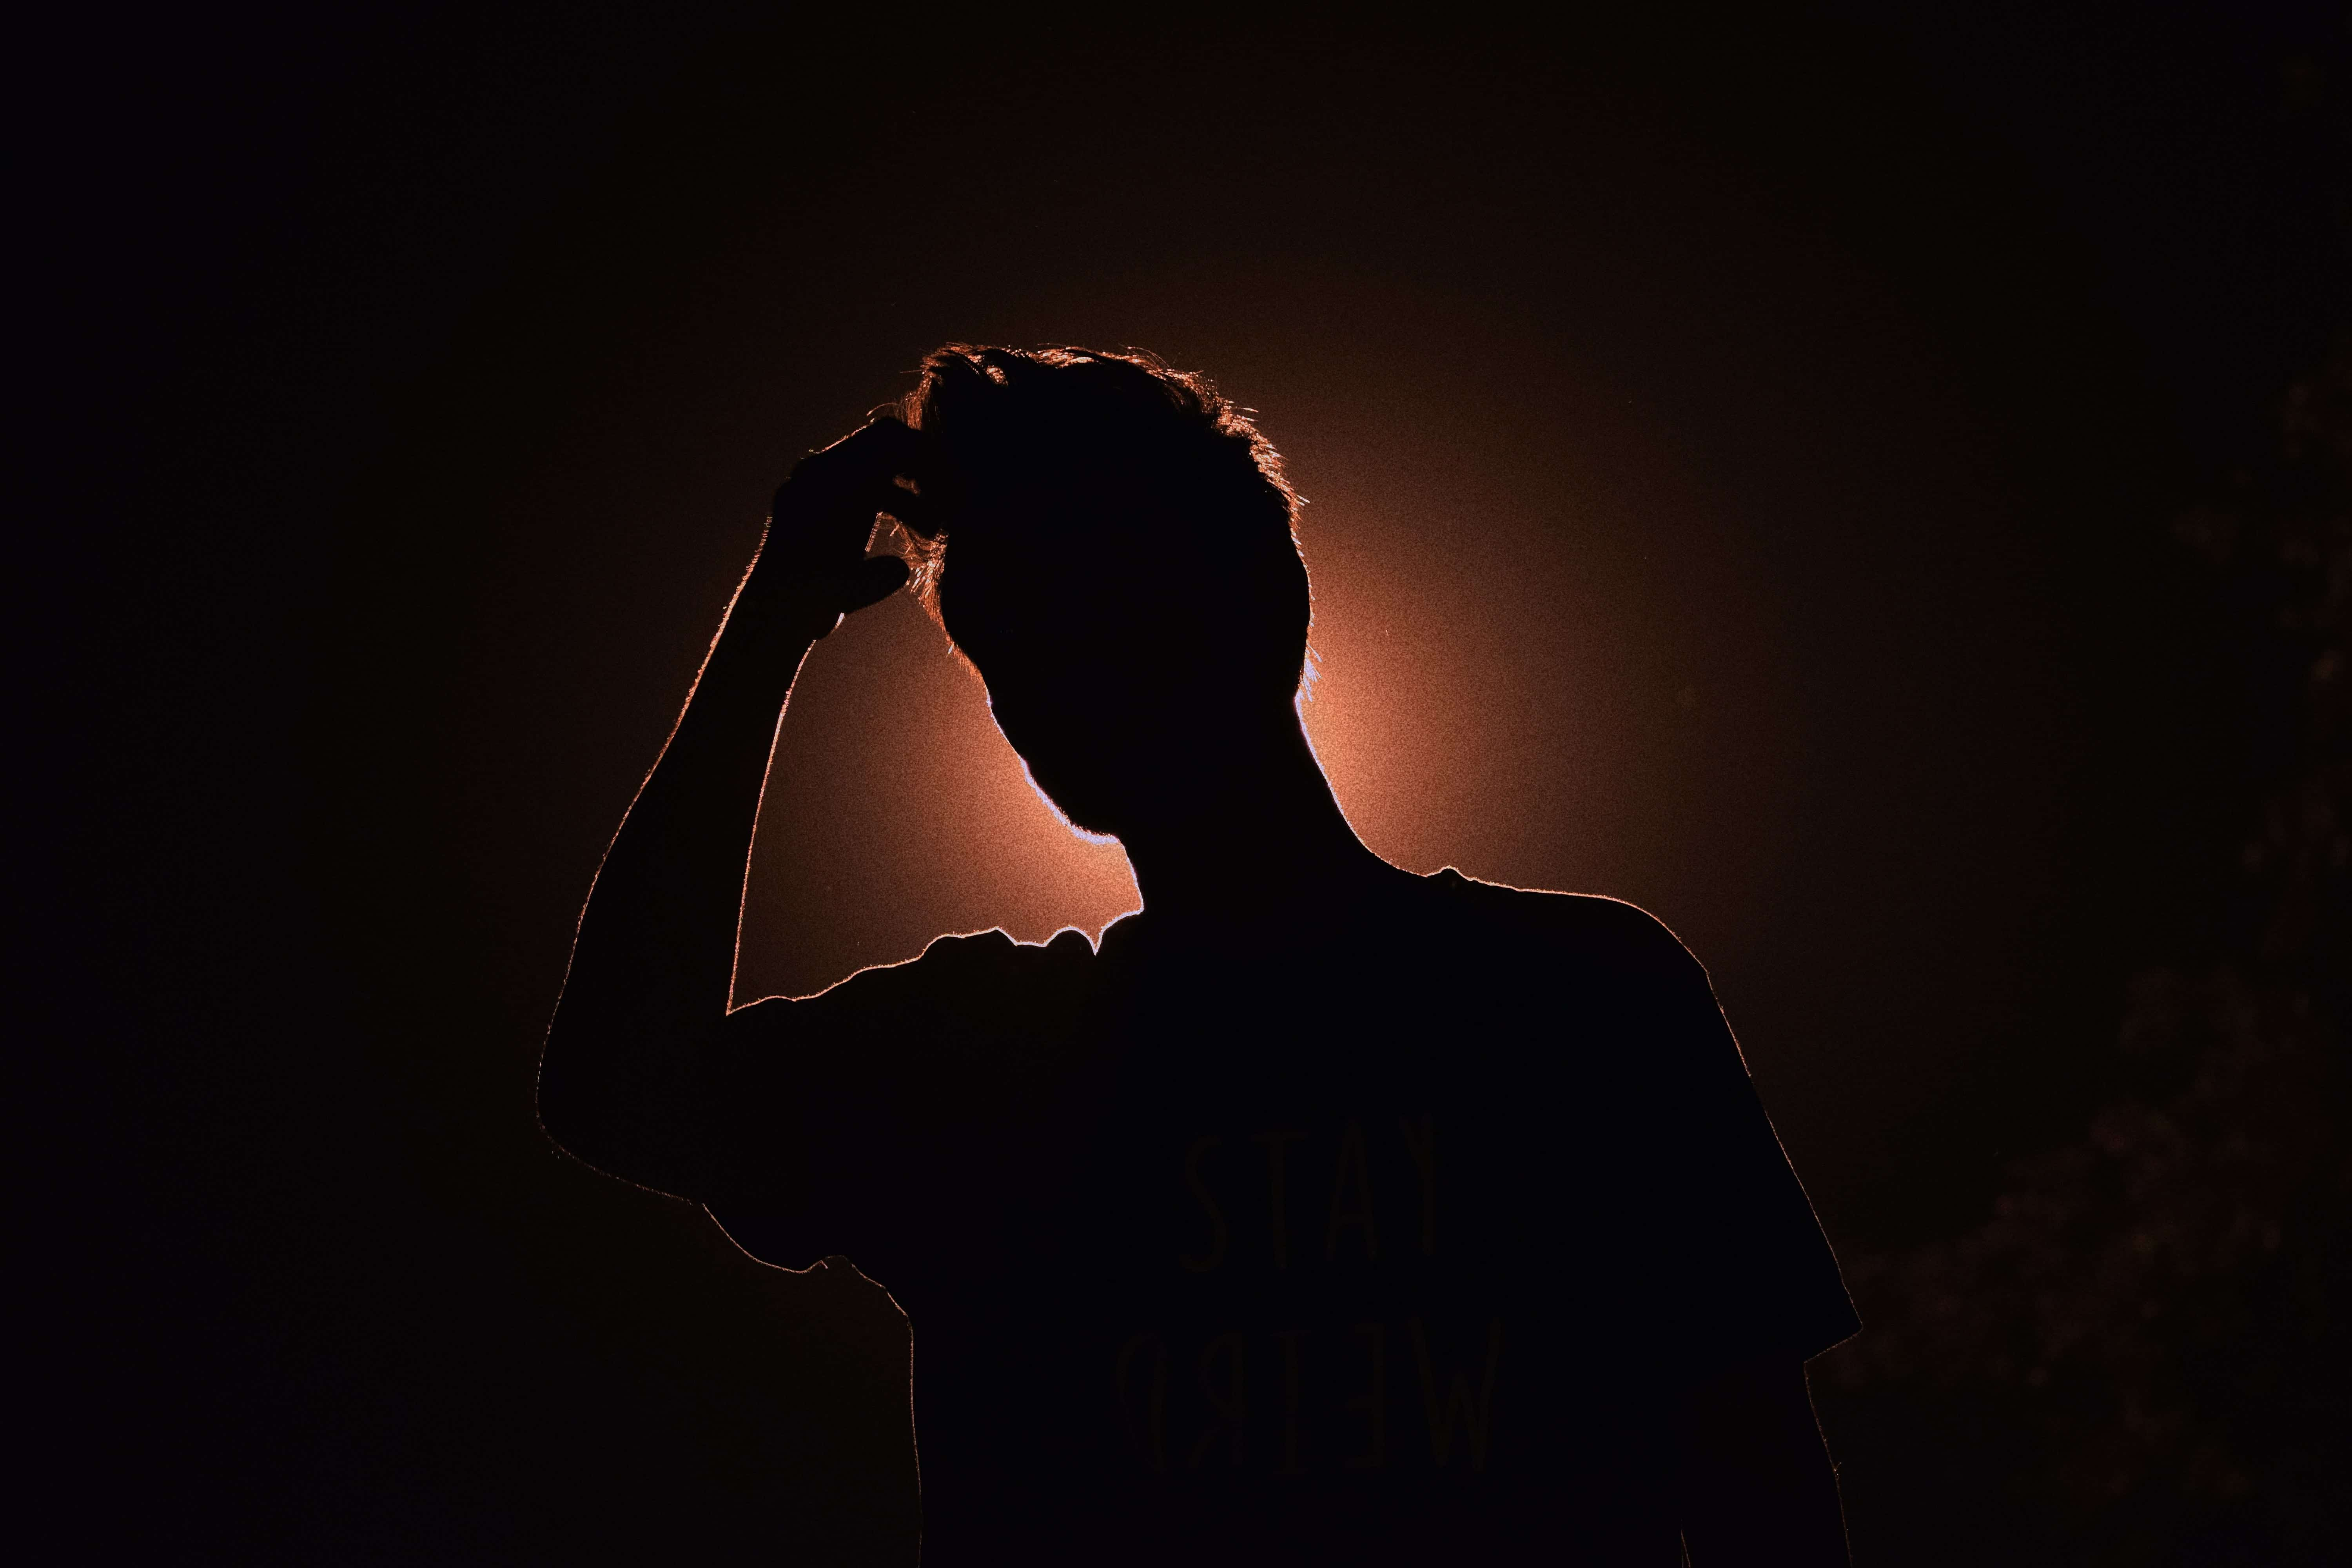 Silhouette image of man touching his head; image by Smit Patel, via Unsplash.com.